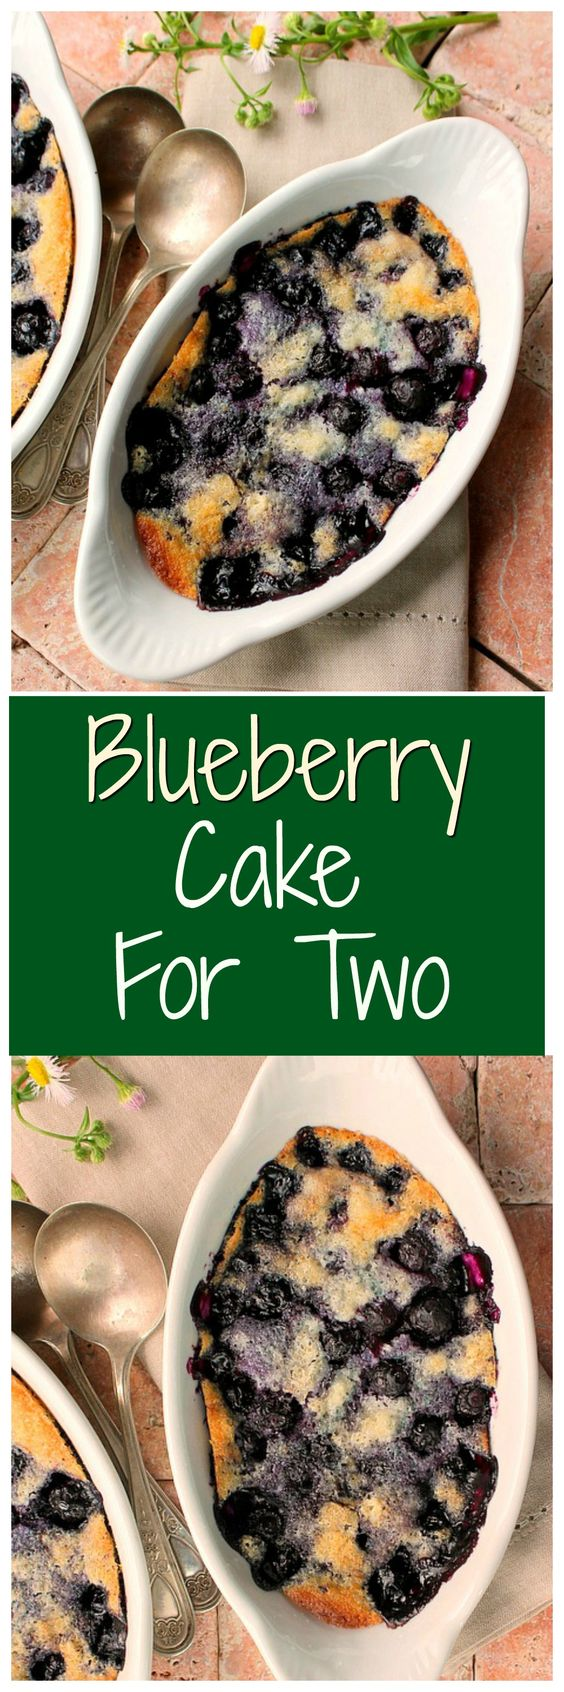 Blueberry Cake For Two Recipe via Bunny's Warm Oven...This dessert for two is packed with a terrific blueberry flavor! The recipe can be doubled or tripled without any problem at all and still be mixed and ready for the oven in 10 minutes.